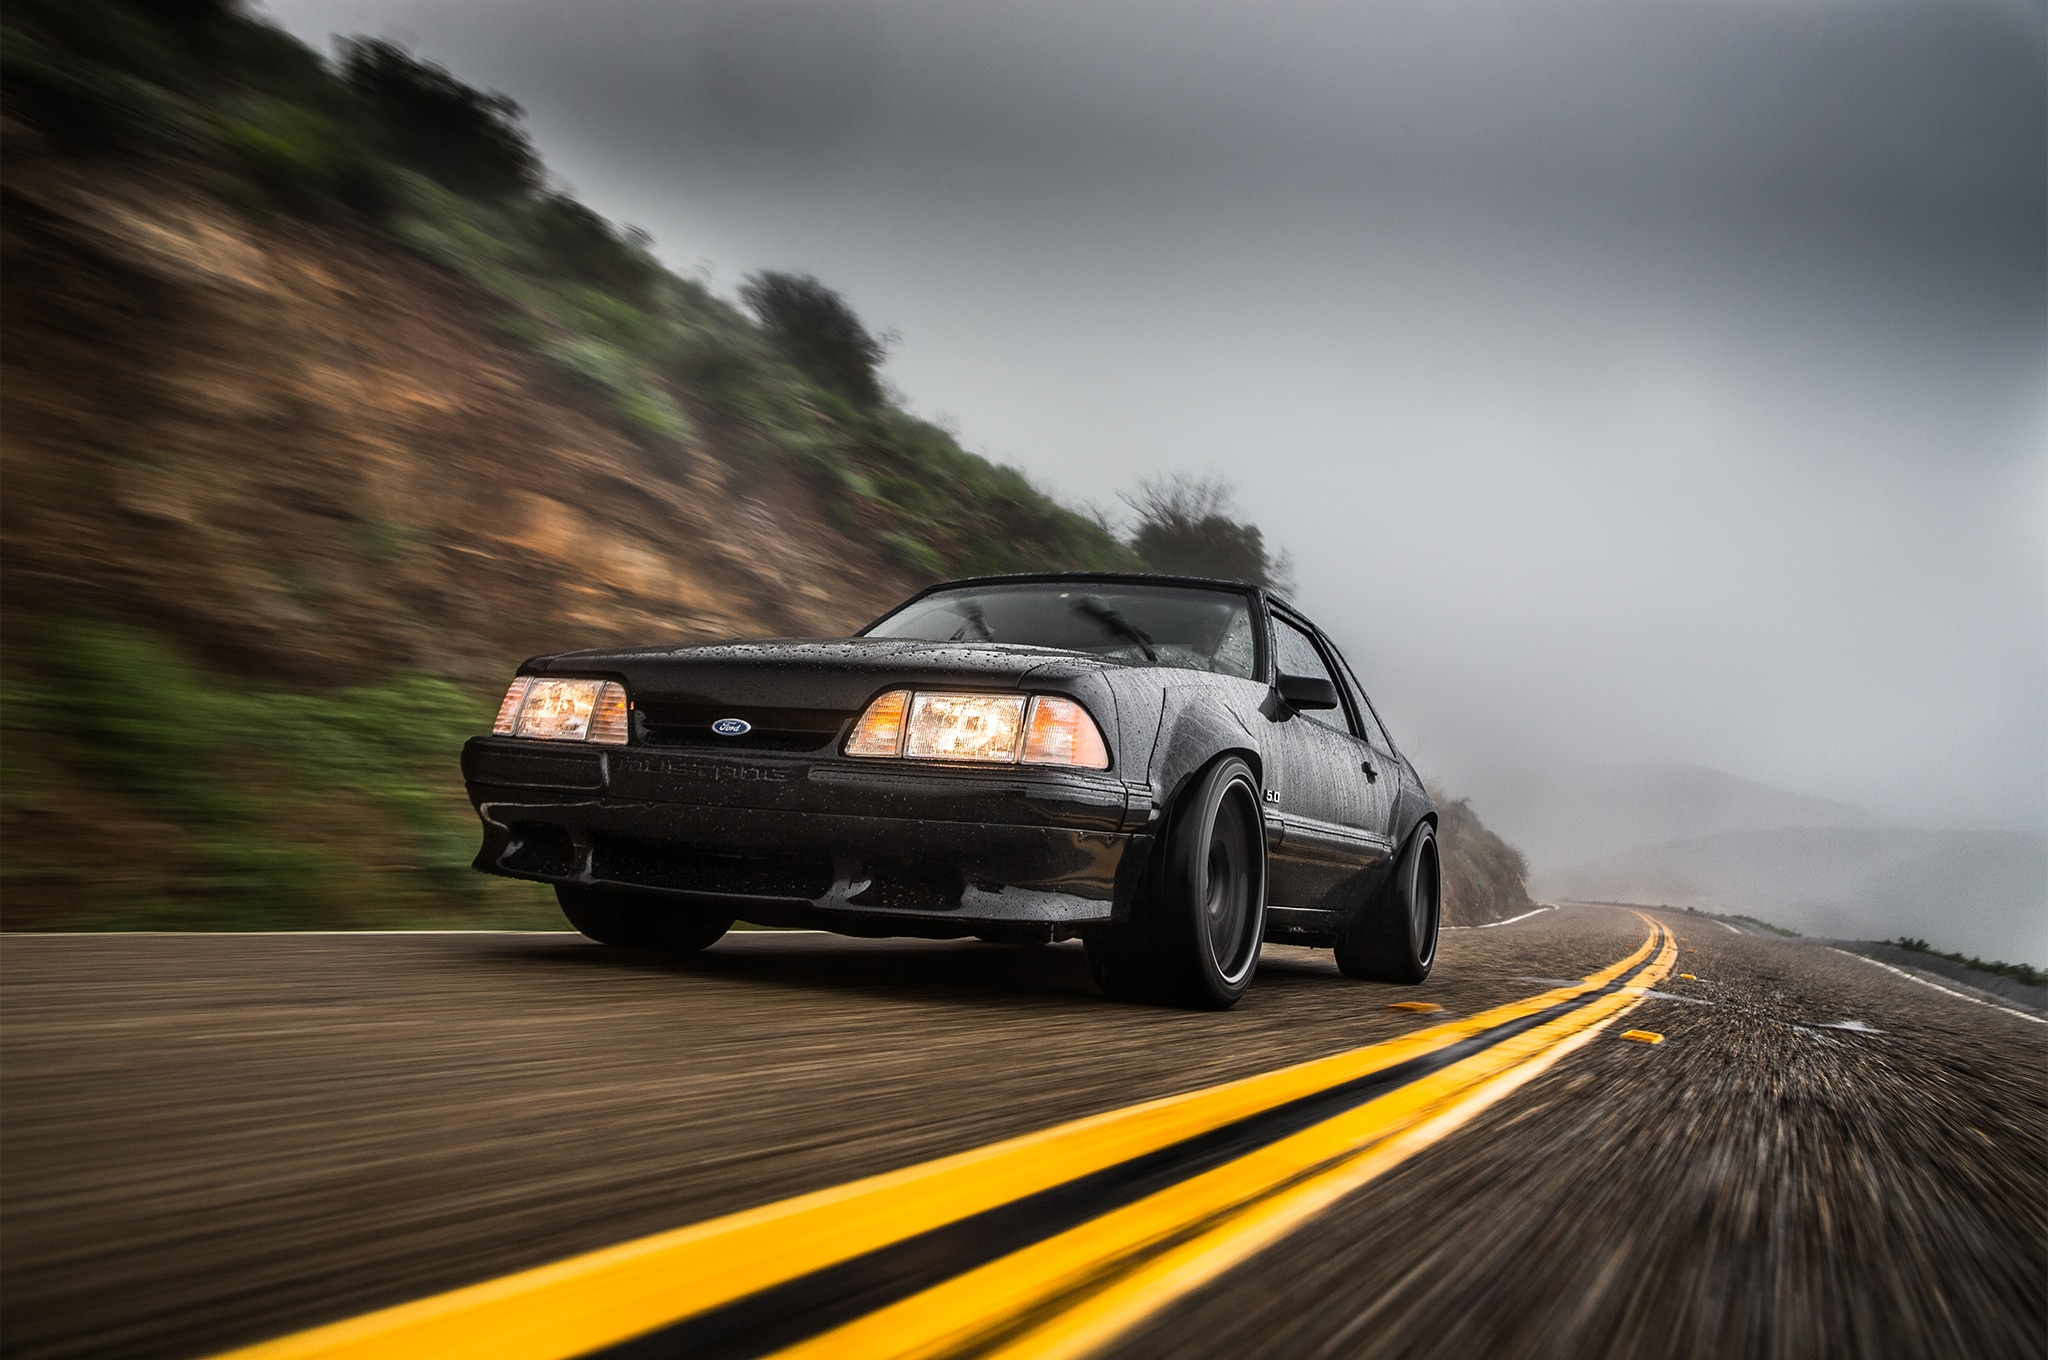 1993 Ford Mustang Lx >> Collectible Classic: 1987-1993 Ford Mustang 5.0 ...